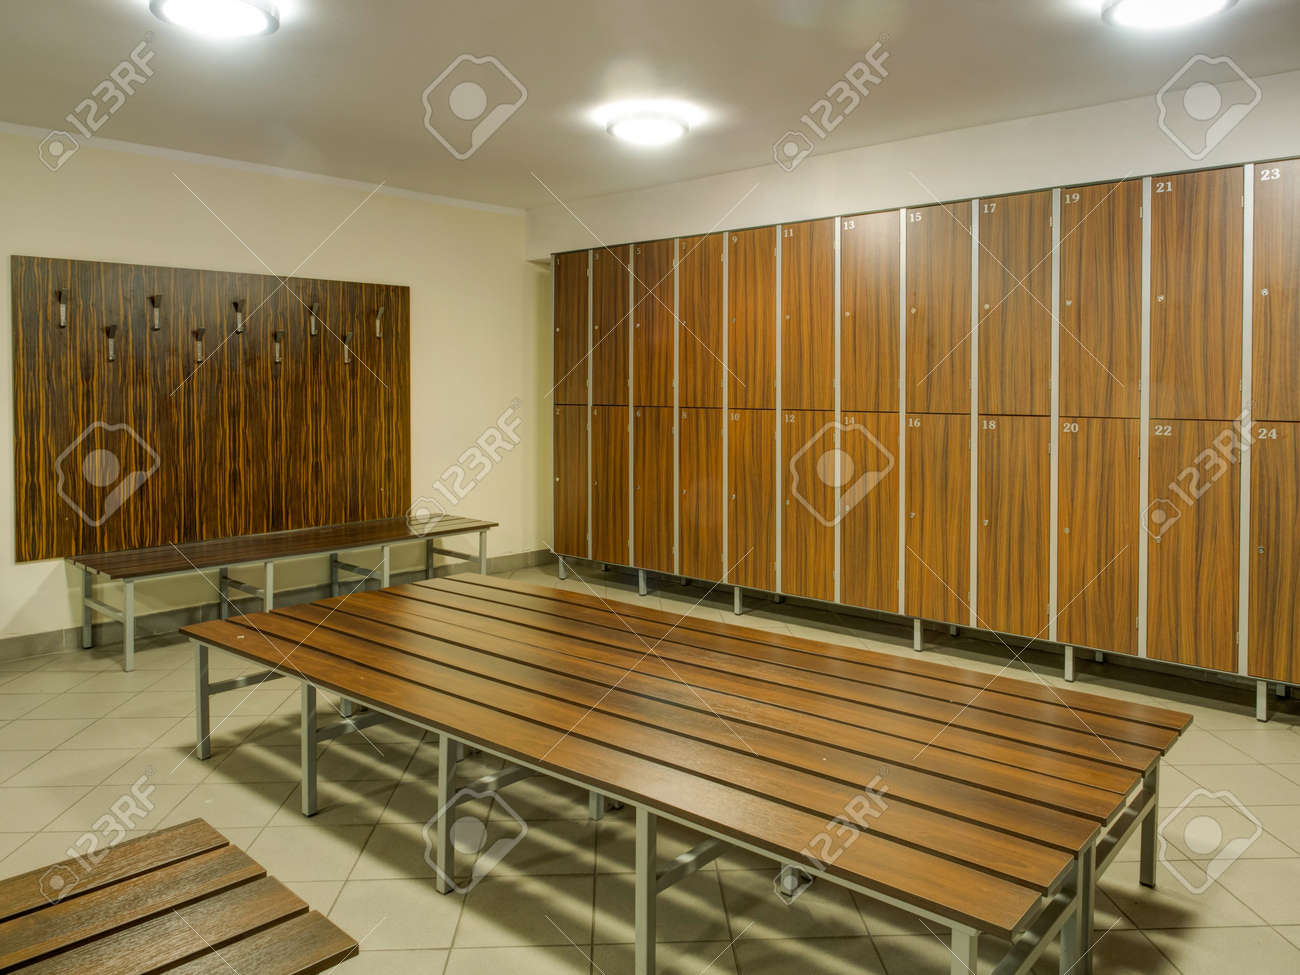 Stock Photo   The Row Of Wooden Cabinets And A Wooden Bench In A Fitness  Club Dressing Room